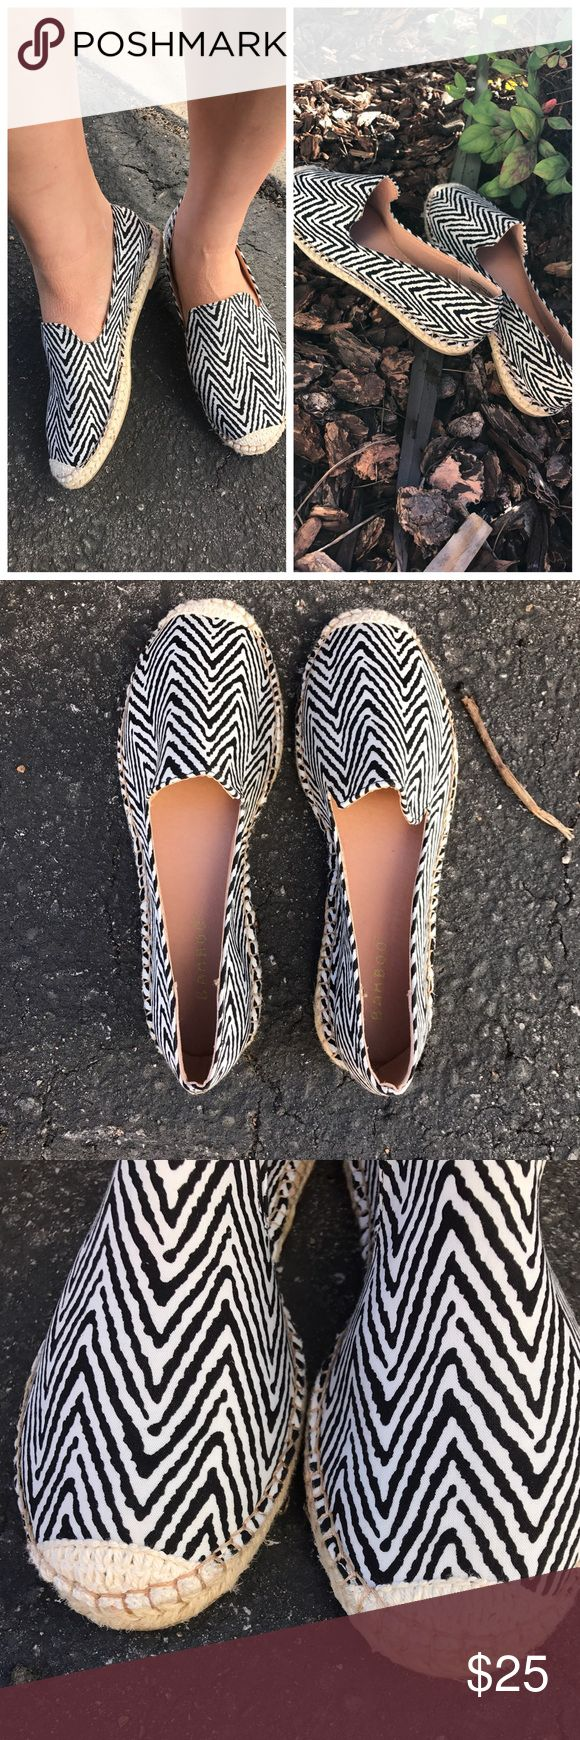 Zig zag Chevron espadrille shoes Brand new without box Shoes Espadrilles